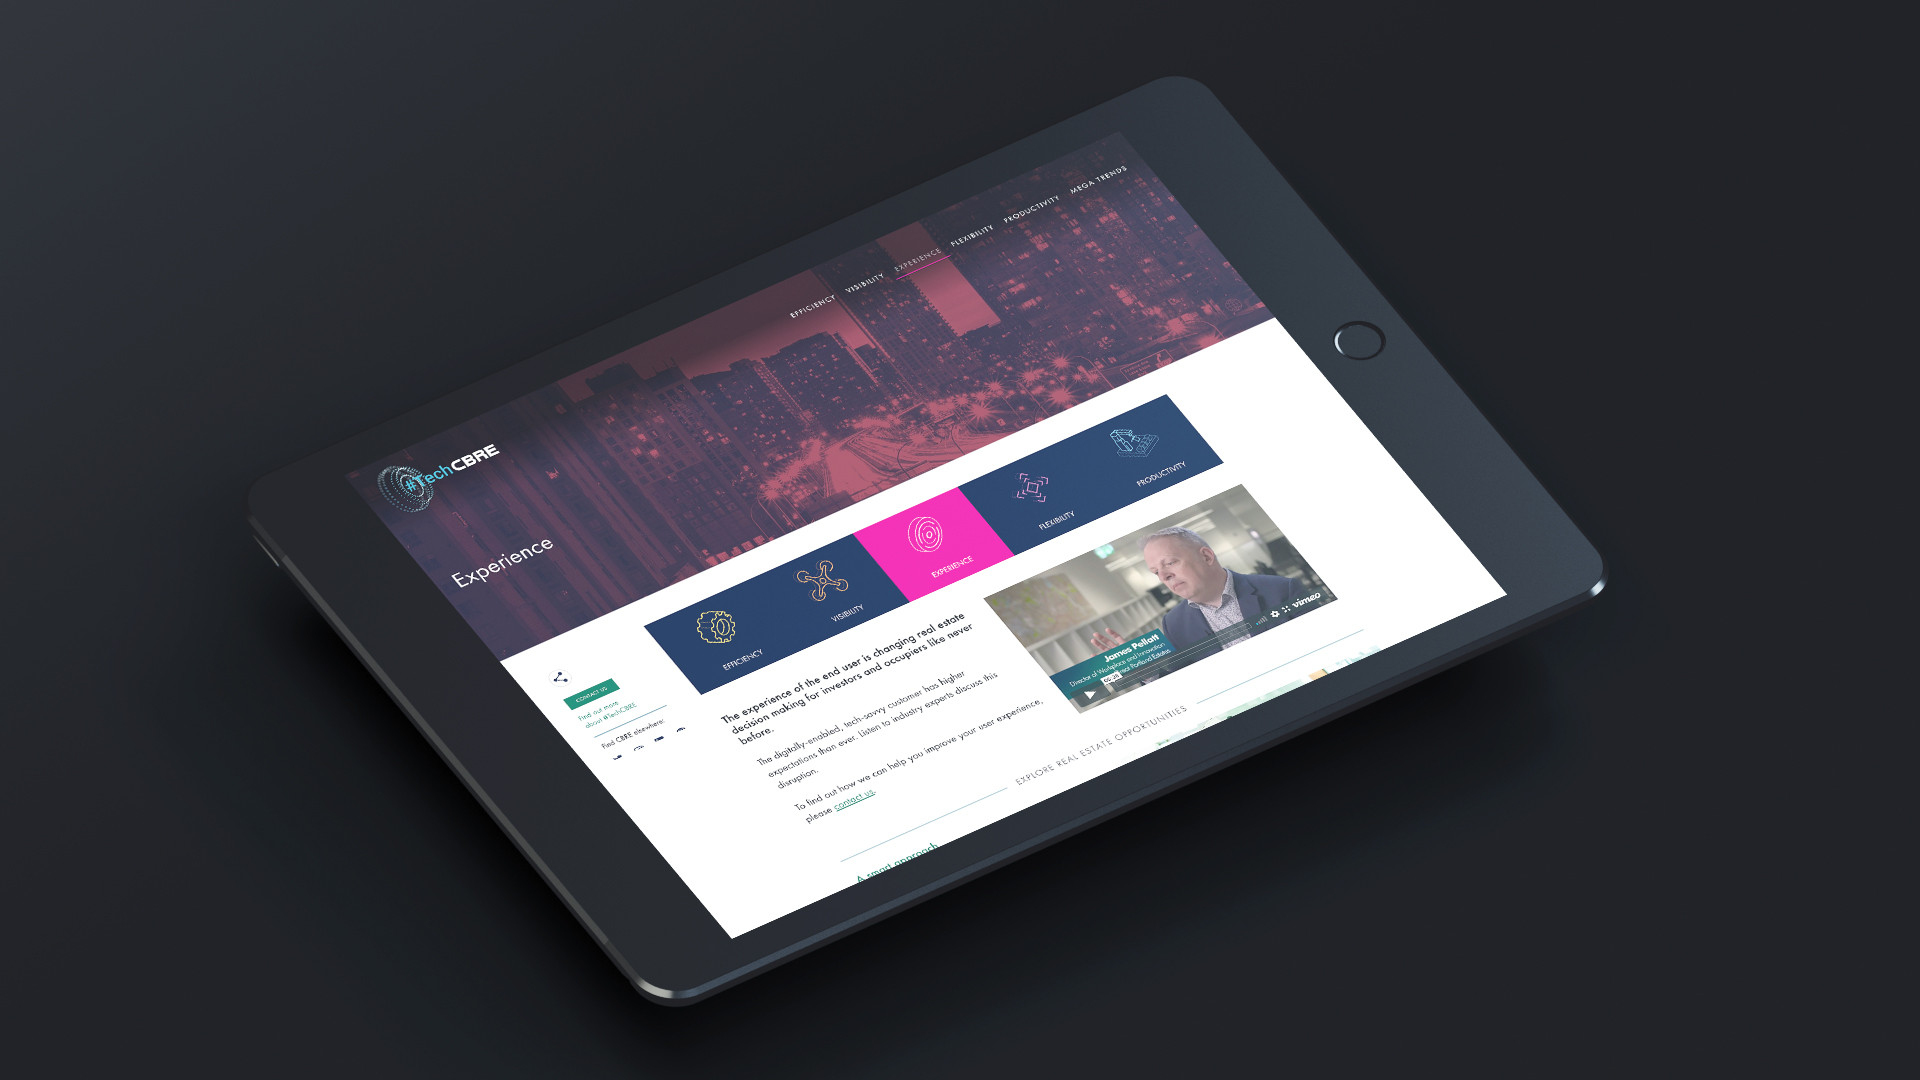 iPad responsive layout